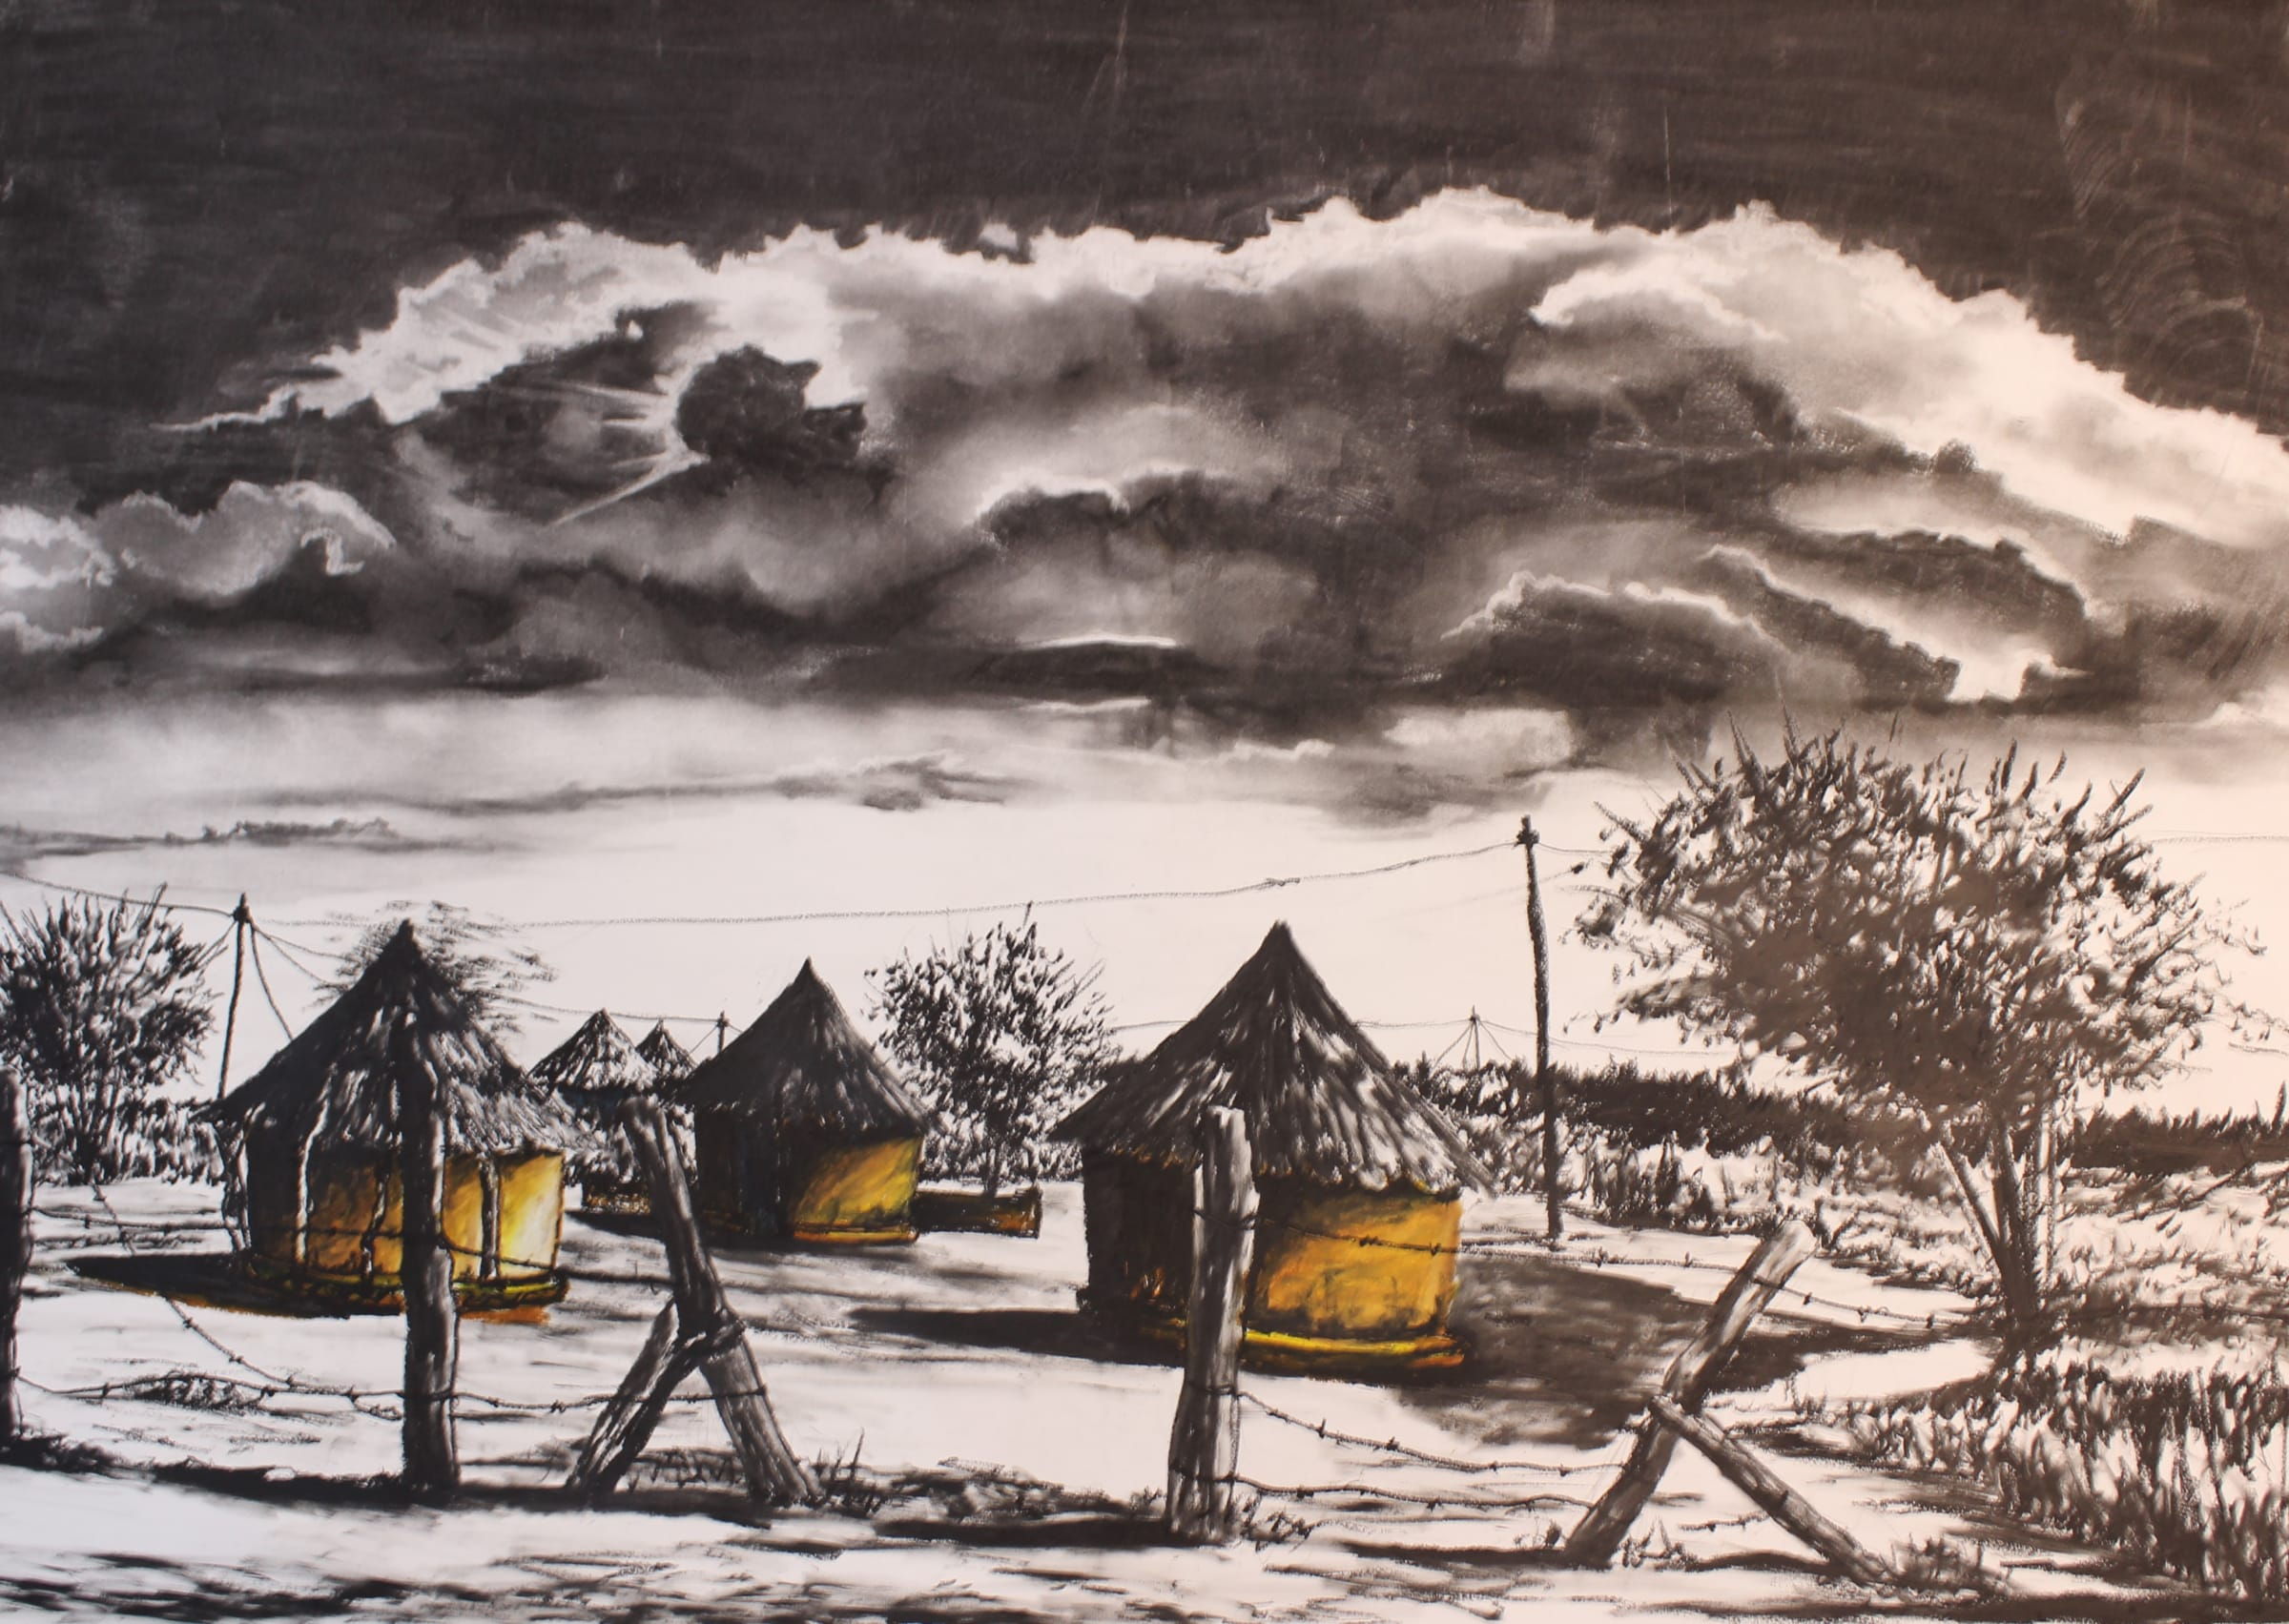 <span class=&#34;link fancybox-details-link&#34;><a href=&#34;/artists/98-walter-fumani-maluleke/works/1566-walter-fumani-maluleke-home-is-home-kaya-hile-kaya-2018/&#34;>View Detail Page</a></span><div class=&#34;artist&#34;><strong>Walter Fumani Maluleke</strong></div> <div class=&#34;title&#34;><em>Home Is Home ( Kaya Hile Kaya )</em>, 2018</div> <div class=&#34;medium&#34;>Charcoal On Frabriano Paper</div> <div class=&#34;dimensions&#34;>100cm x 81cm (113.5cm x 95cm framed)</div>